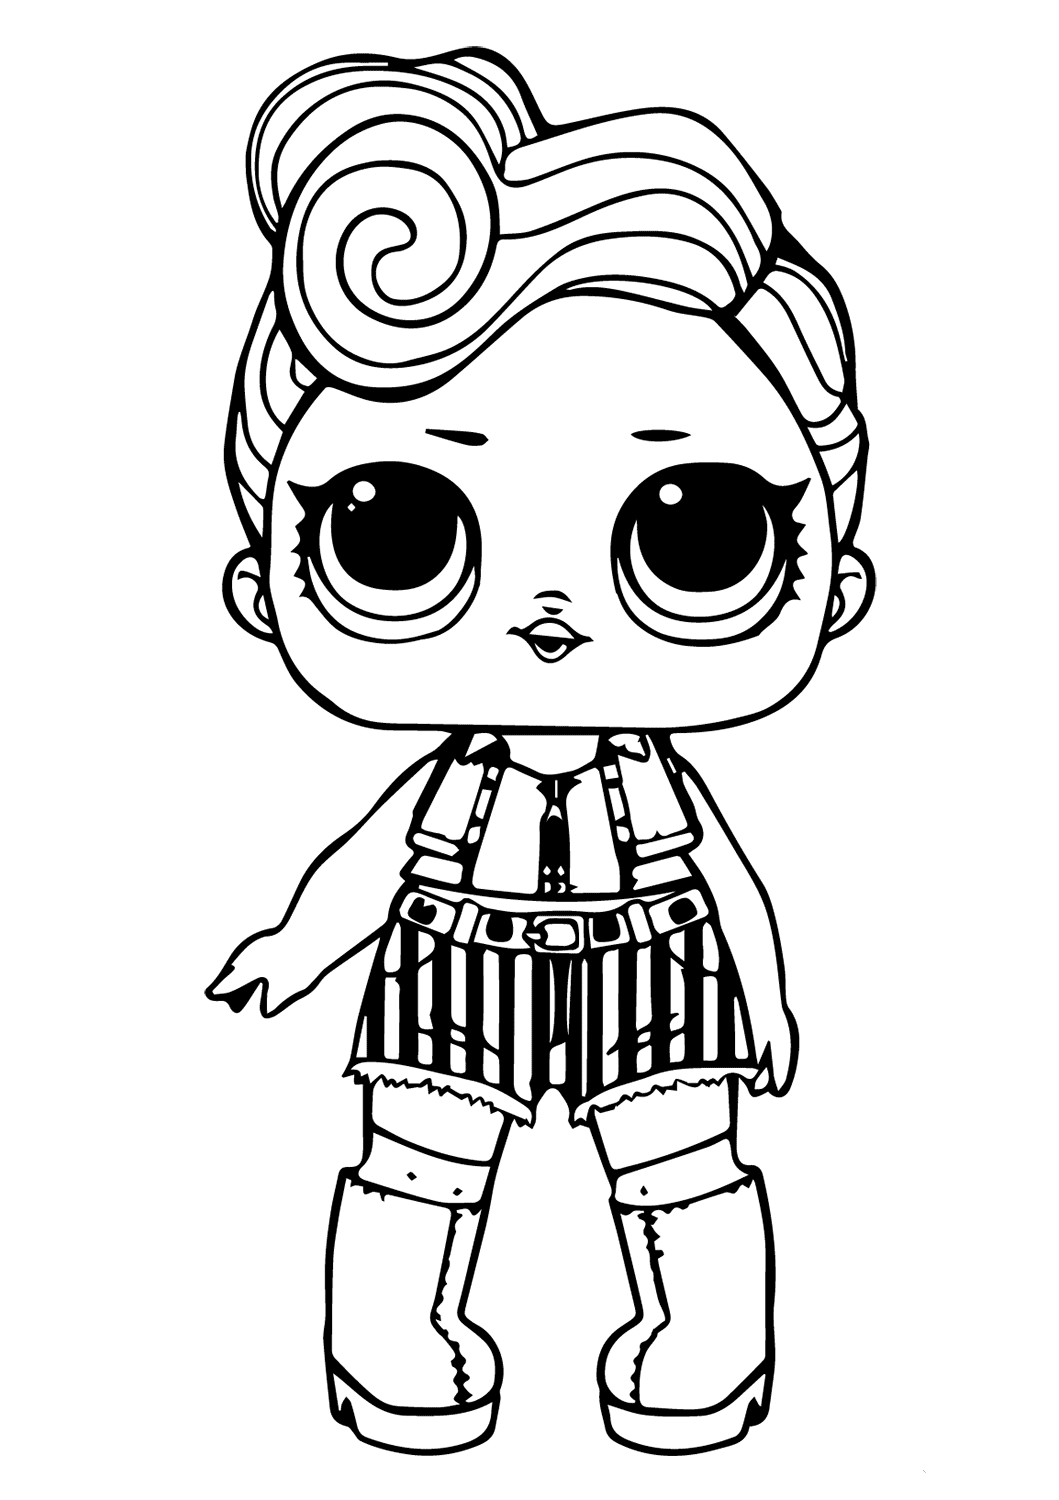 photograph relating to Lol Doll Printable called 40 Totally free Printable LOL Ponder Dolls Coloring Internet pages